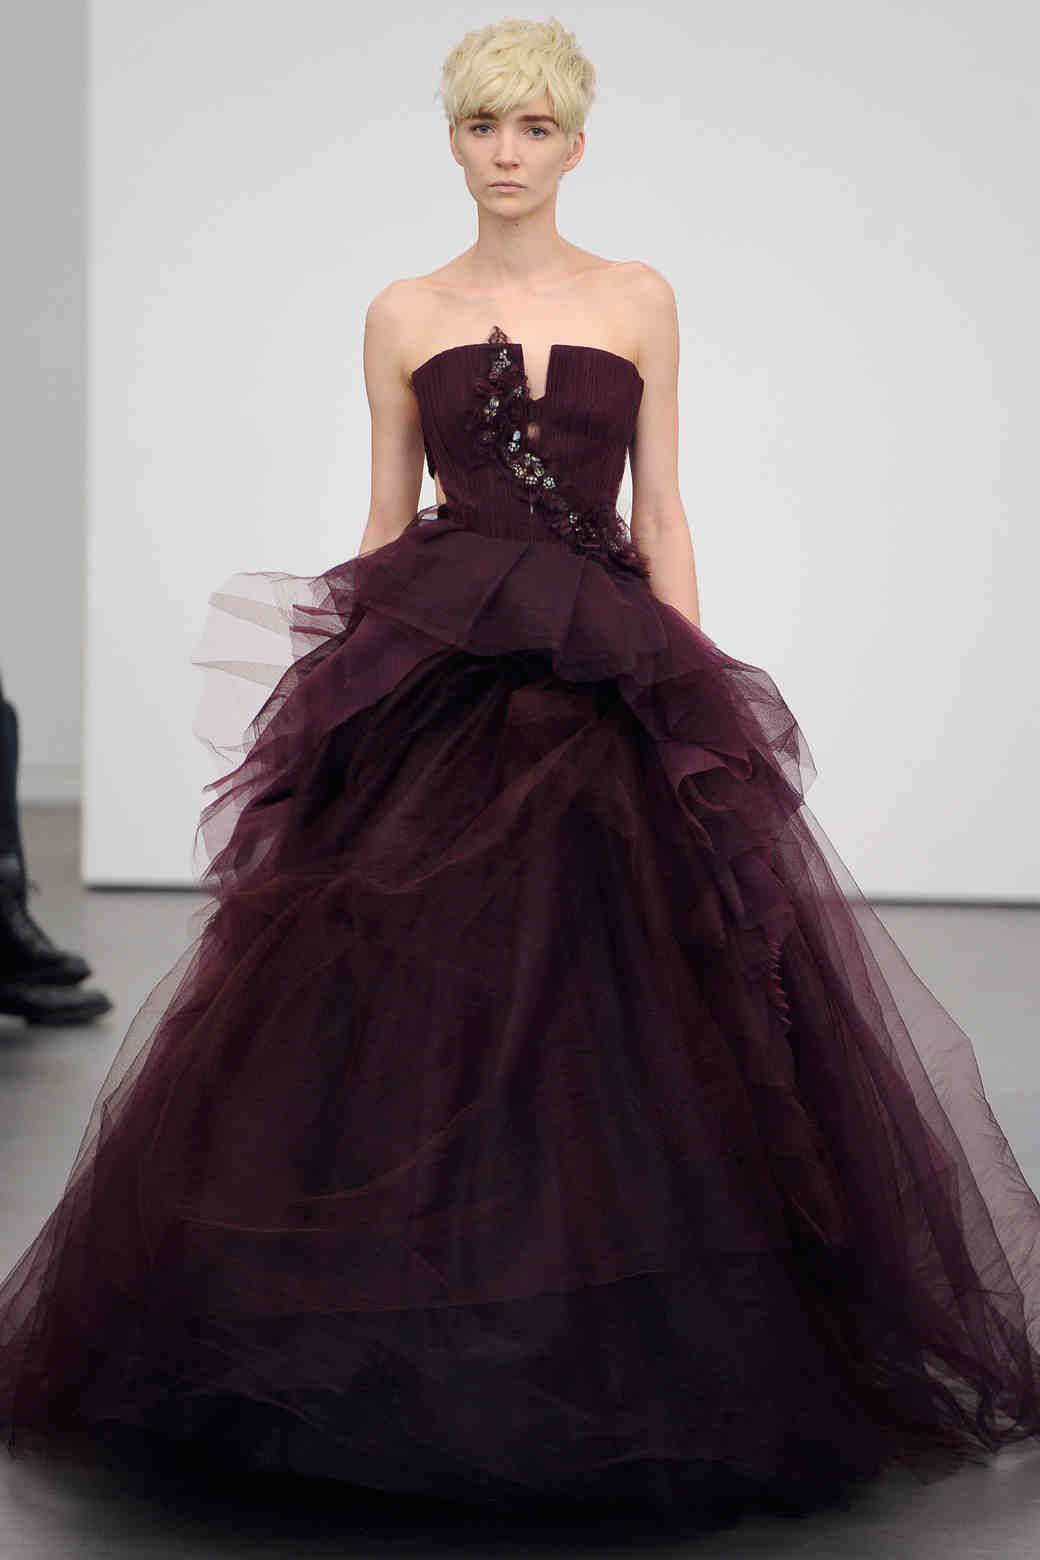 Vera wang ball gown wedding dress  Chrissy Teigenus Three Vera Wang Gowns From Sketch To Wedding Day